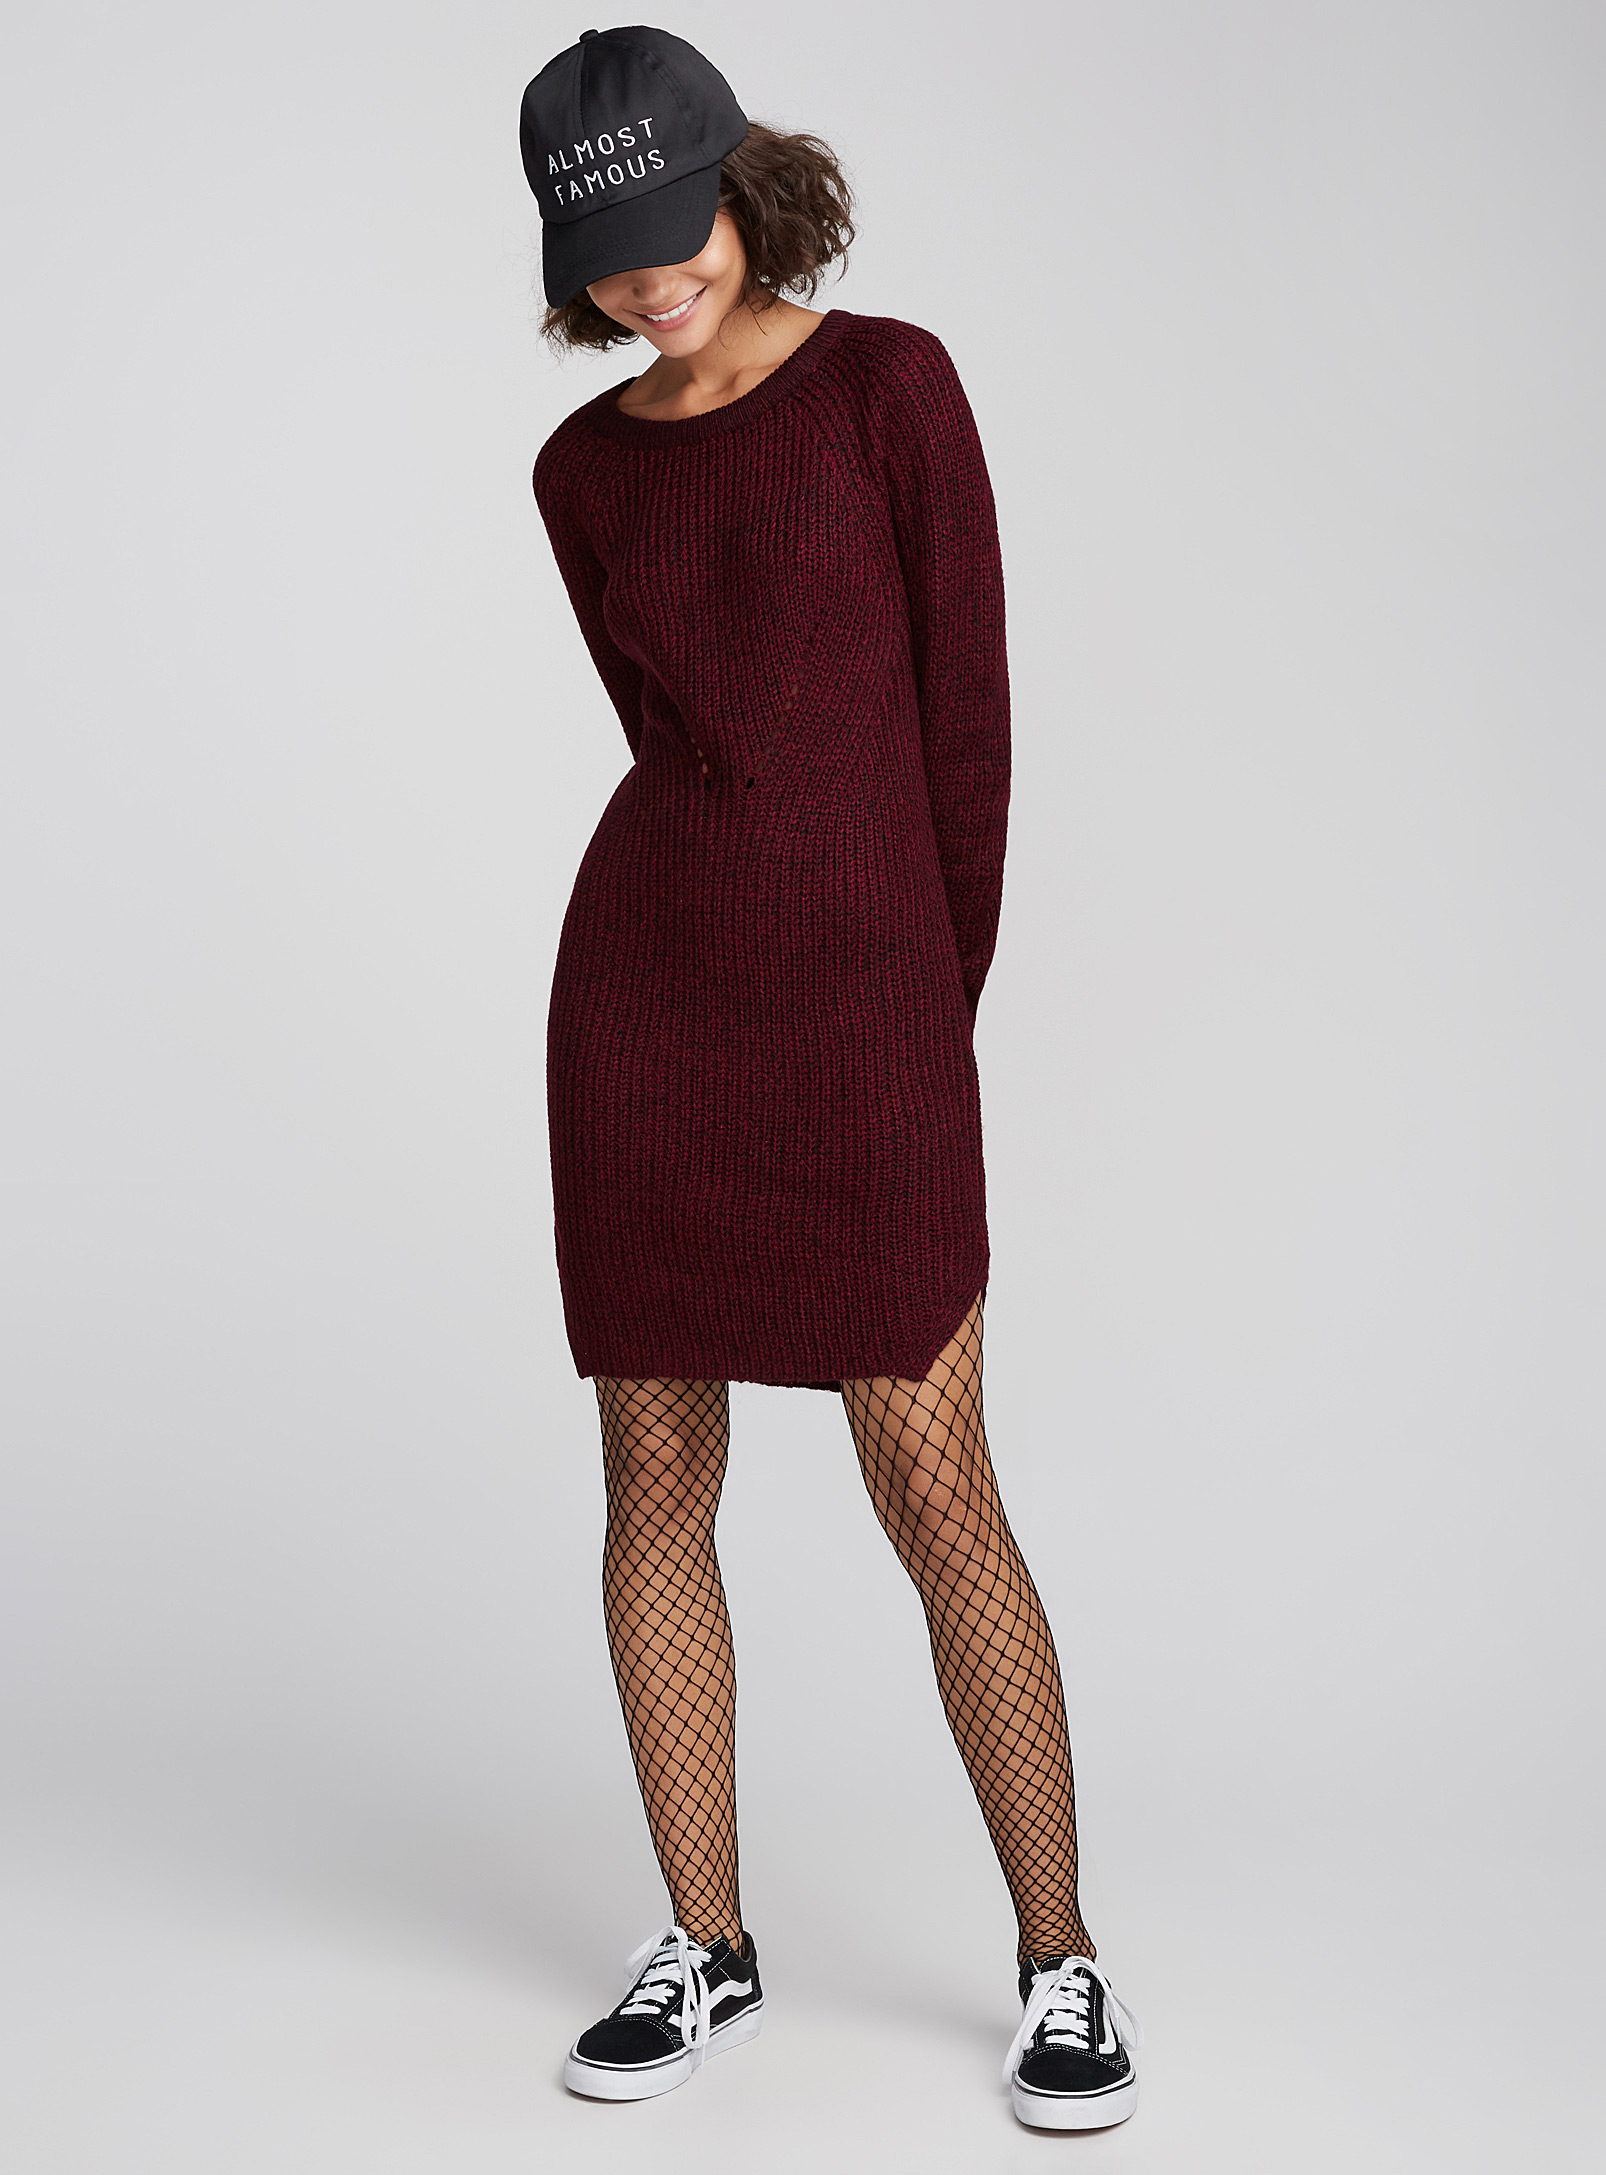 robe rouge, rubis, tricot, simons